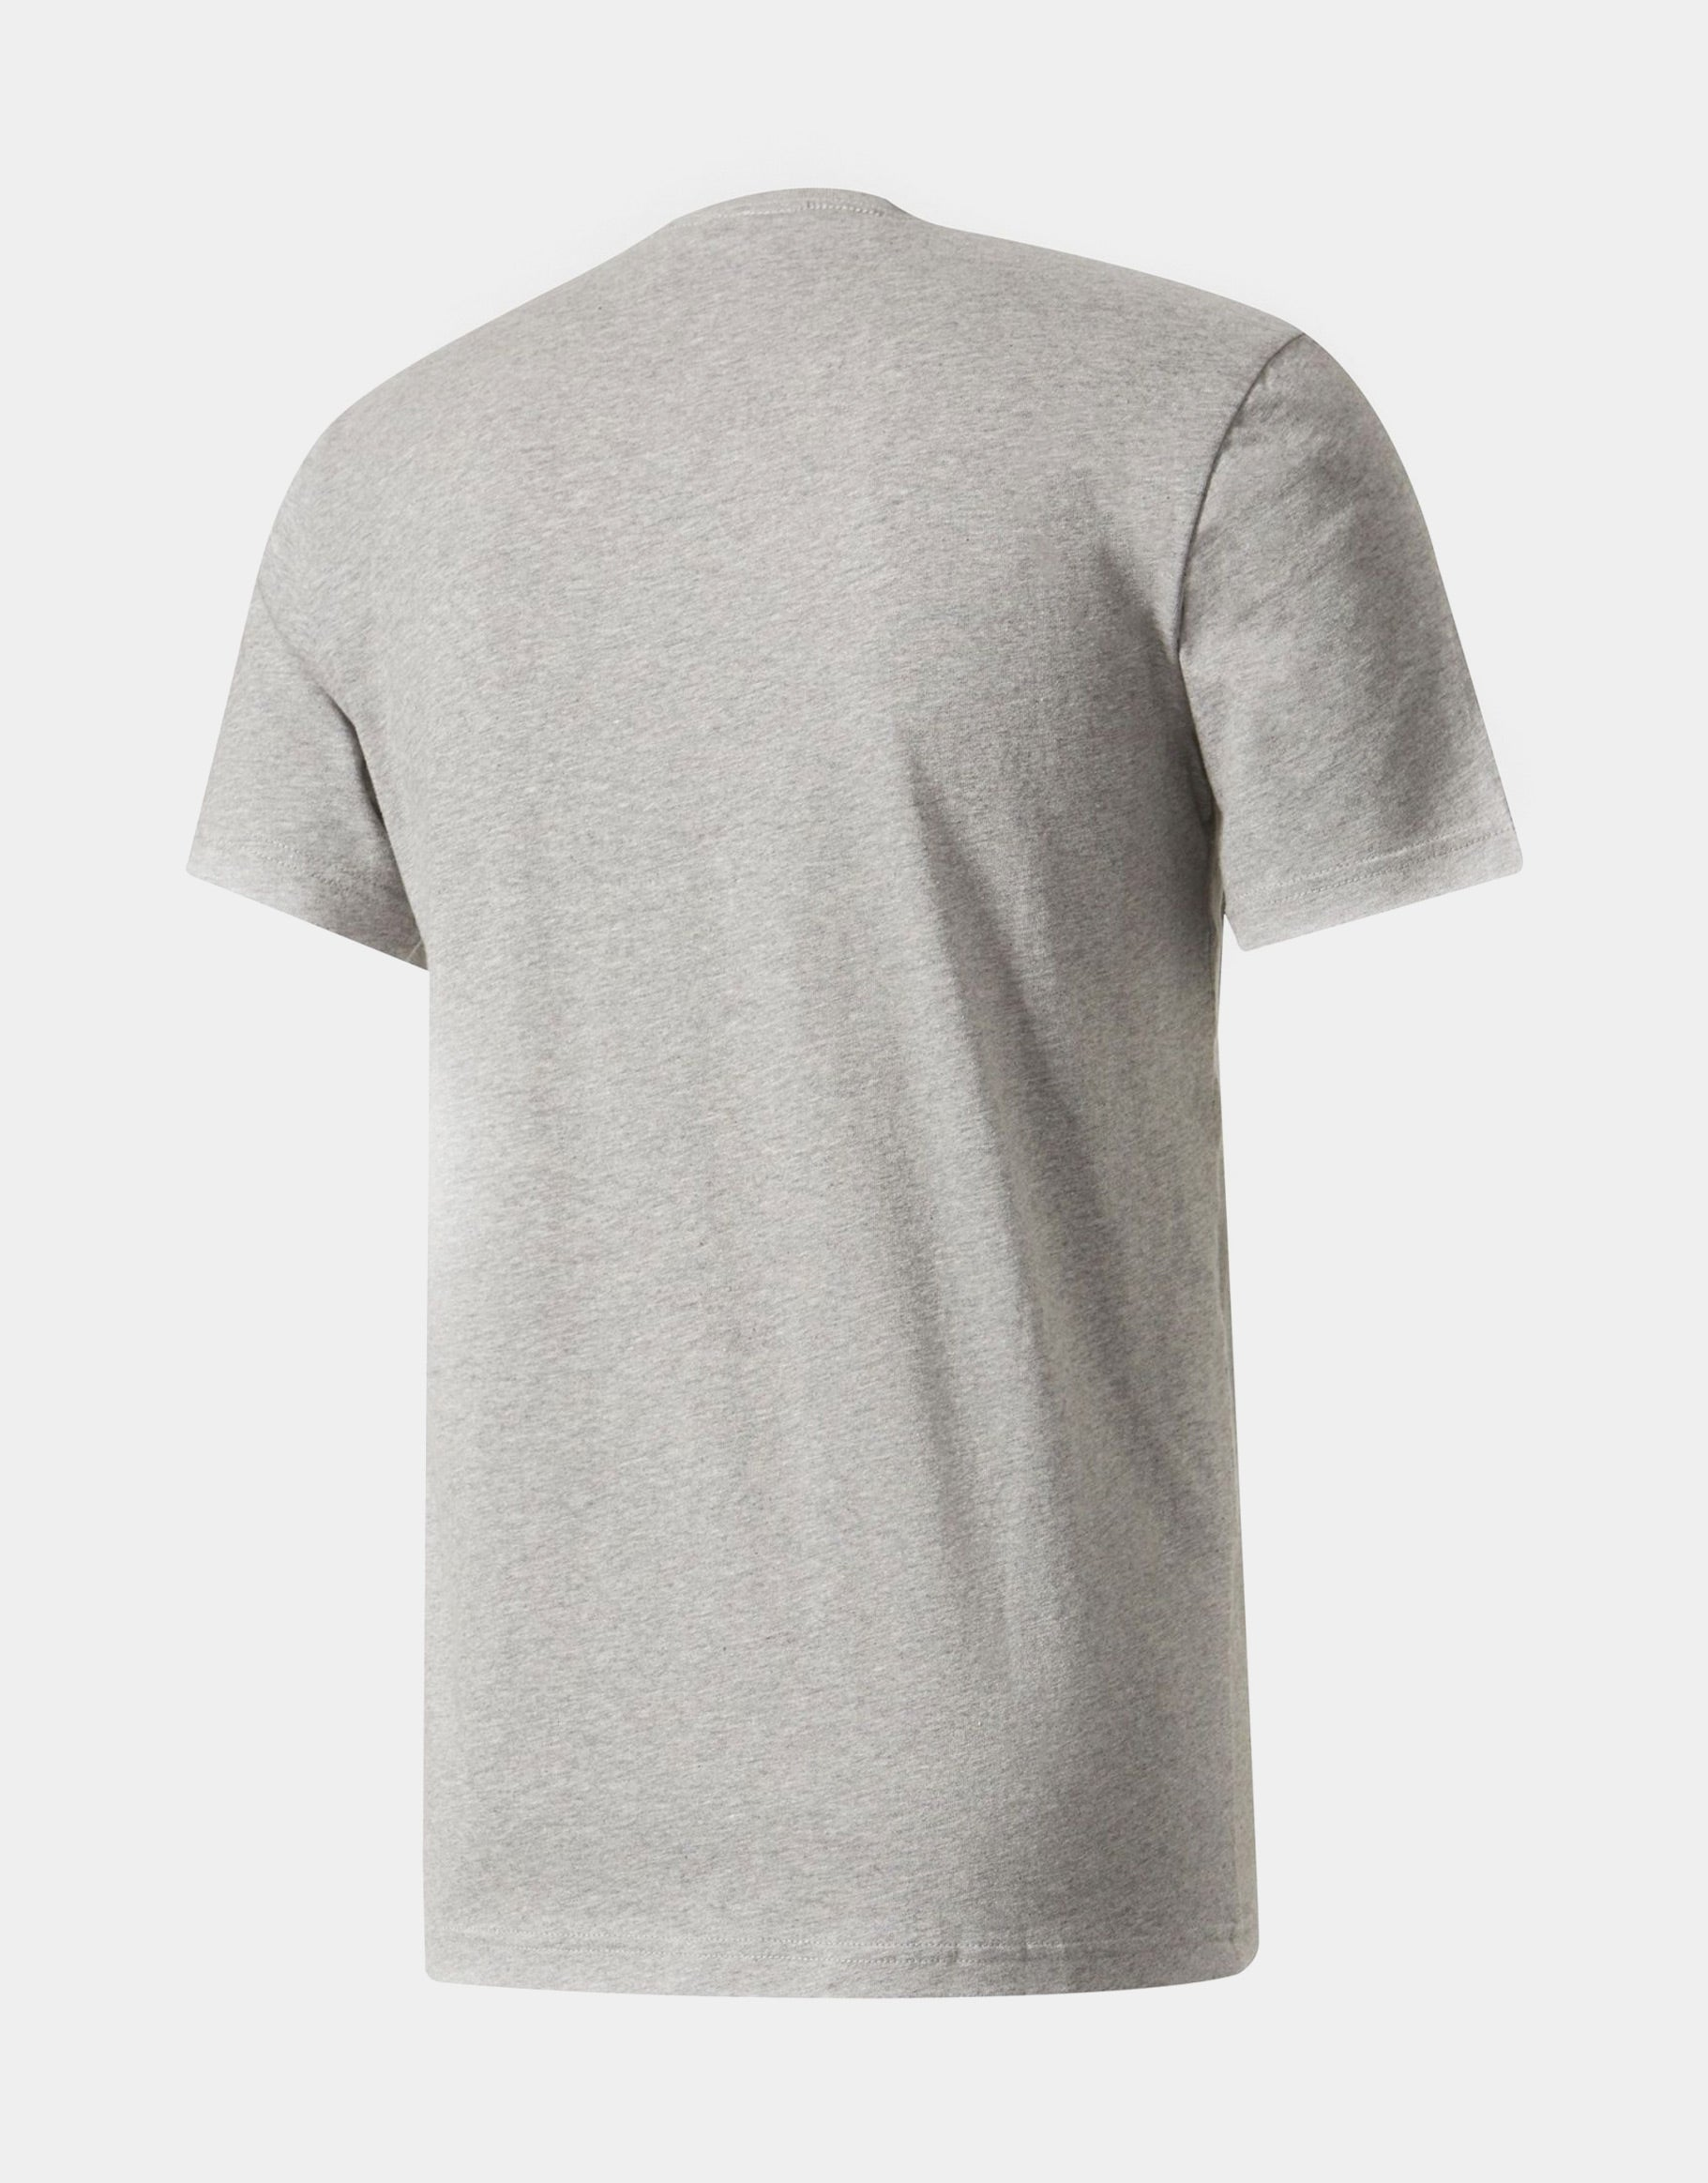 Originals Trefoil Mens T-Shirt (Grey/Black)